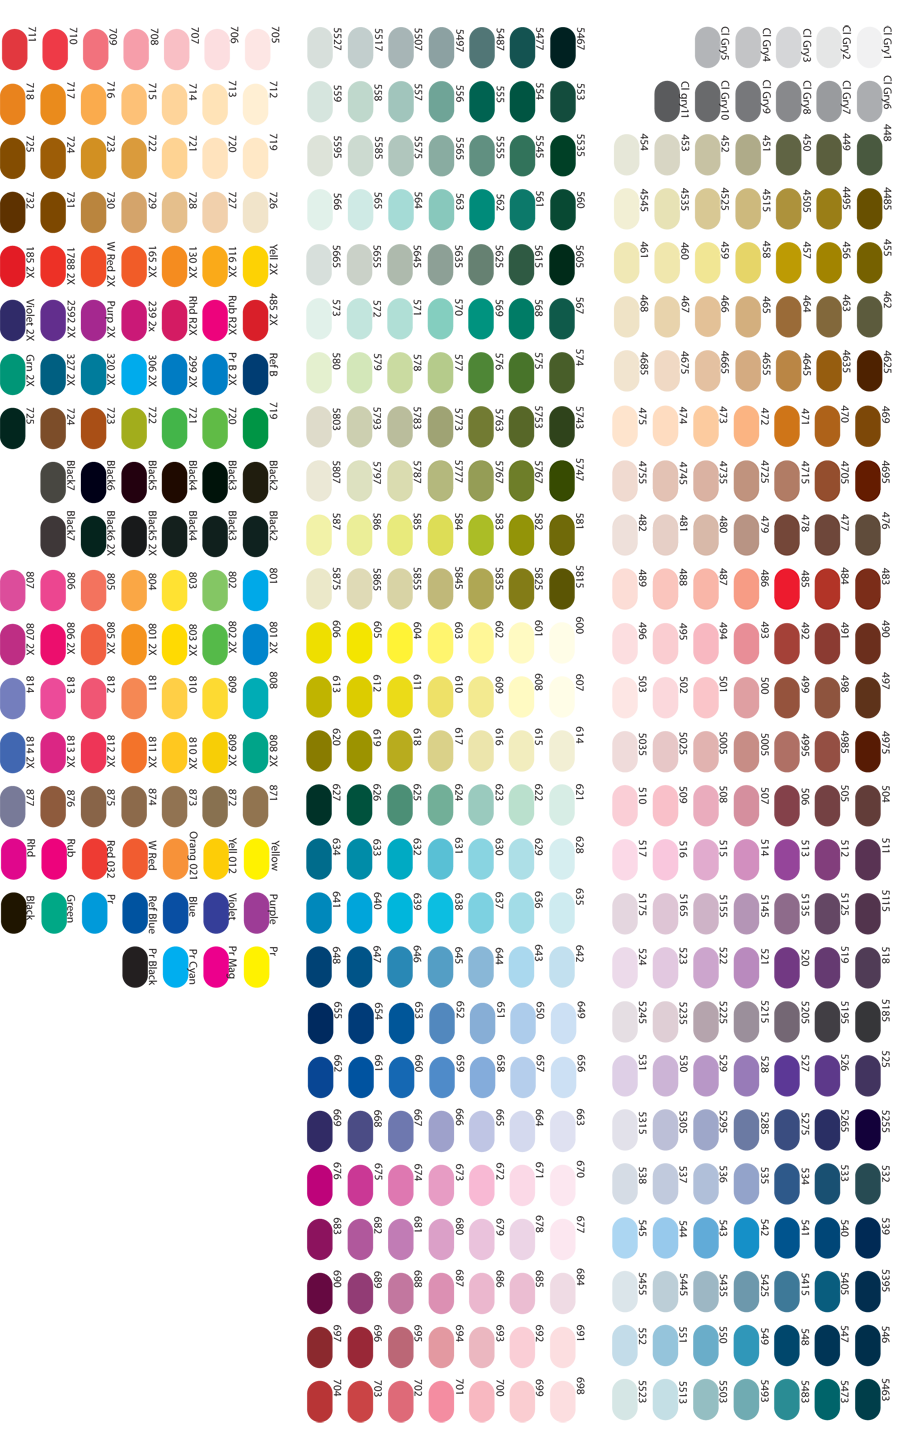 Pin By Jessica Valladares On Color Pantone Color Chart Color Palette Challenge Color Mixing Chart